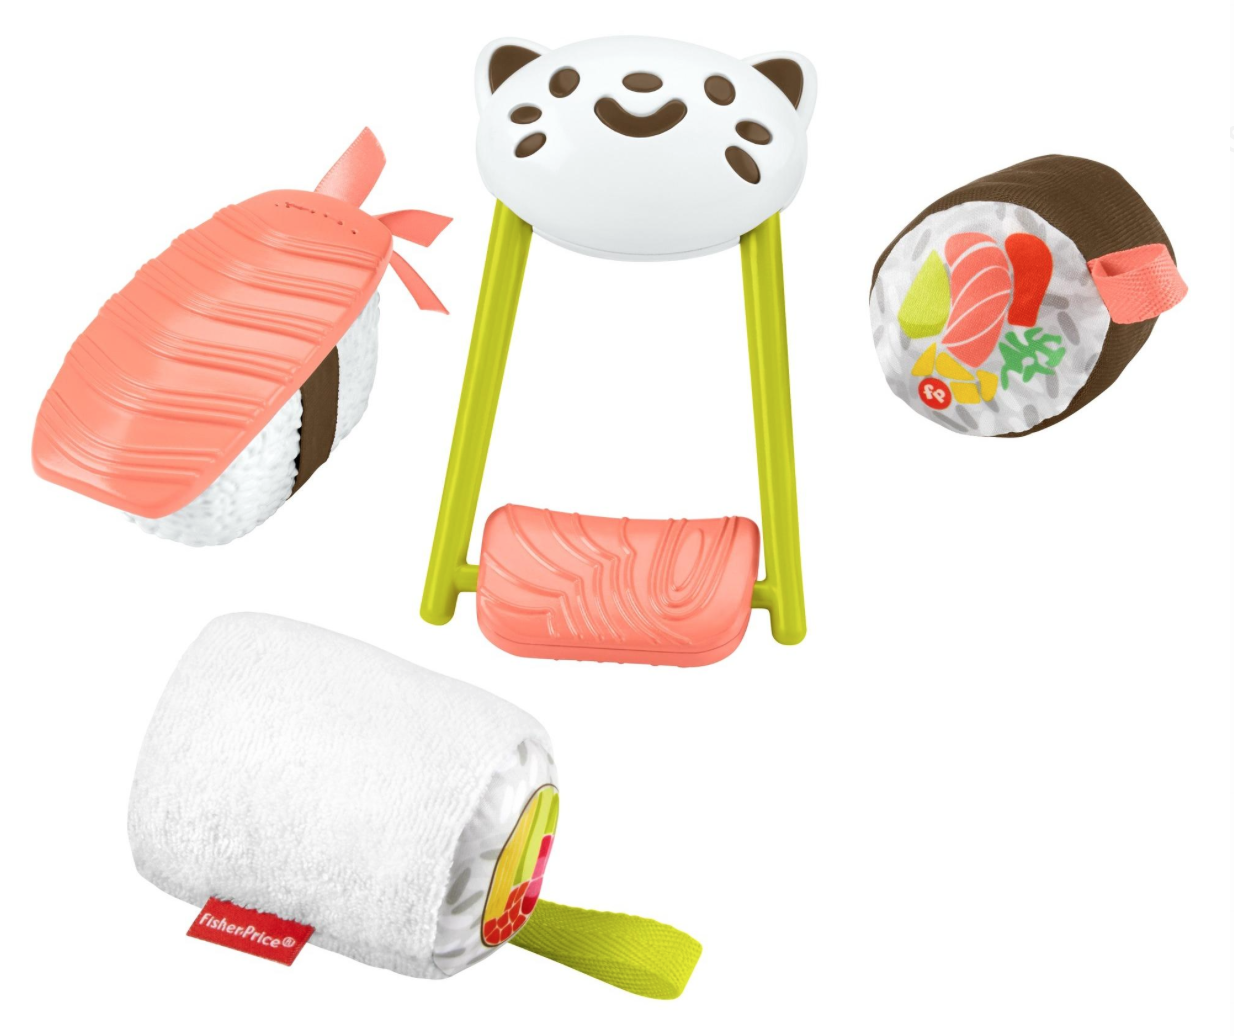 10 Funny Baby Toys and gift ideas